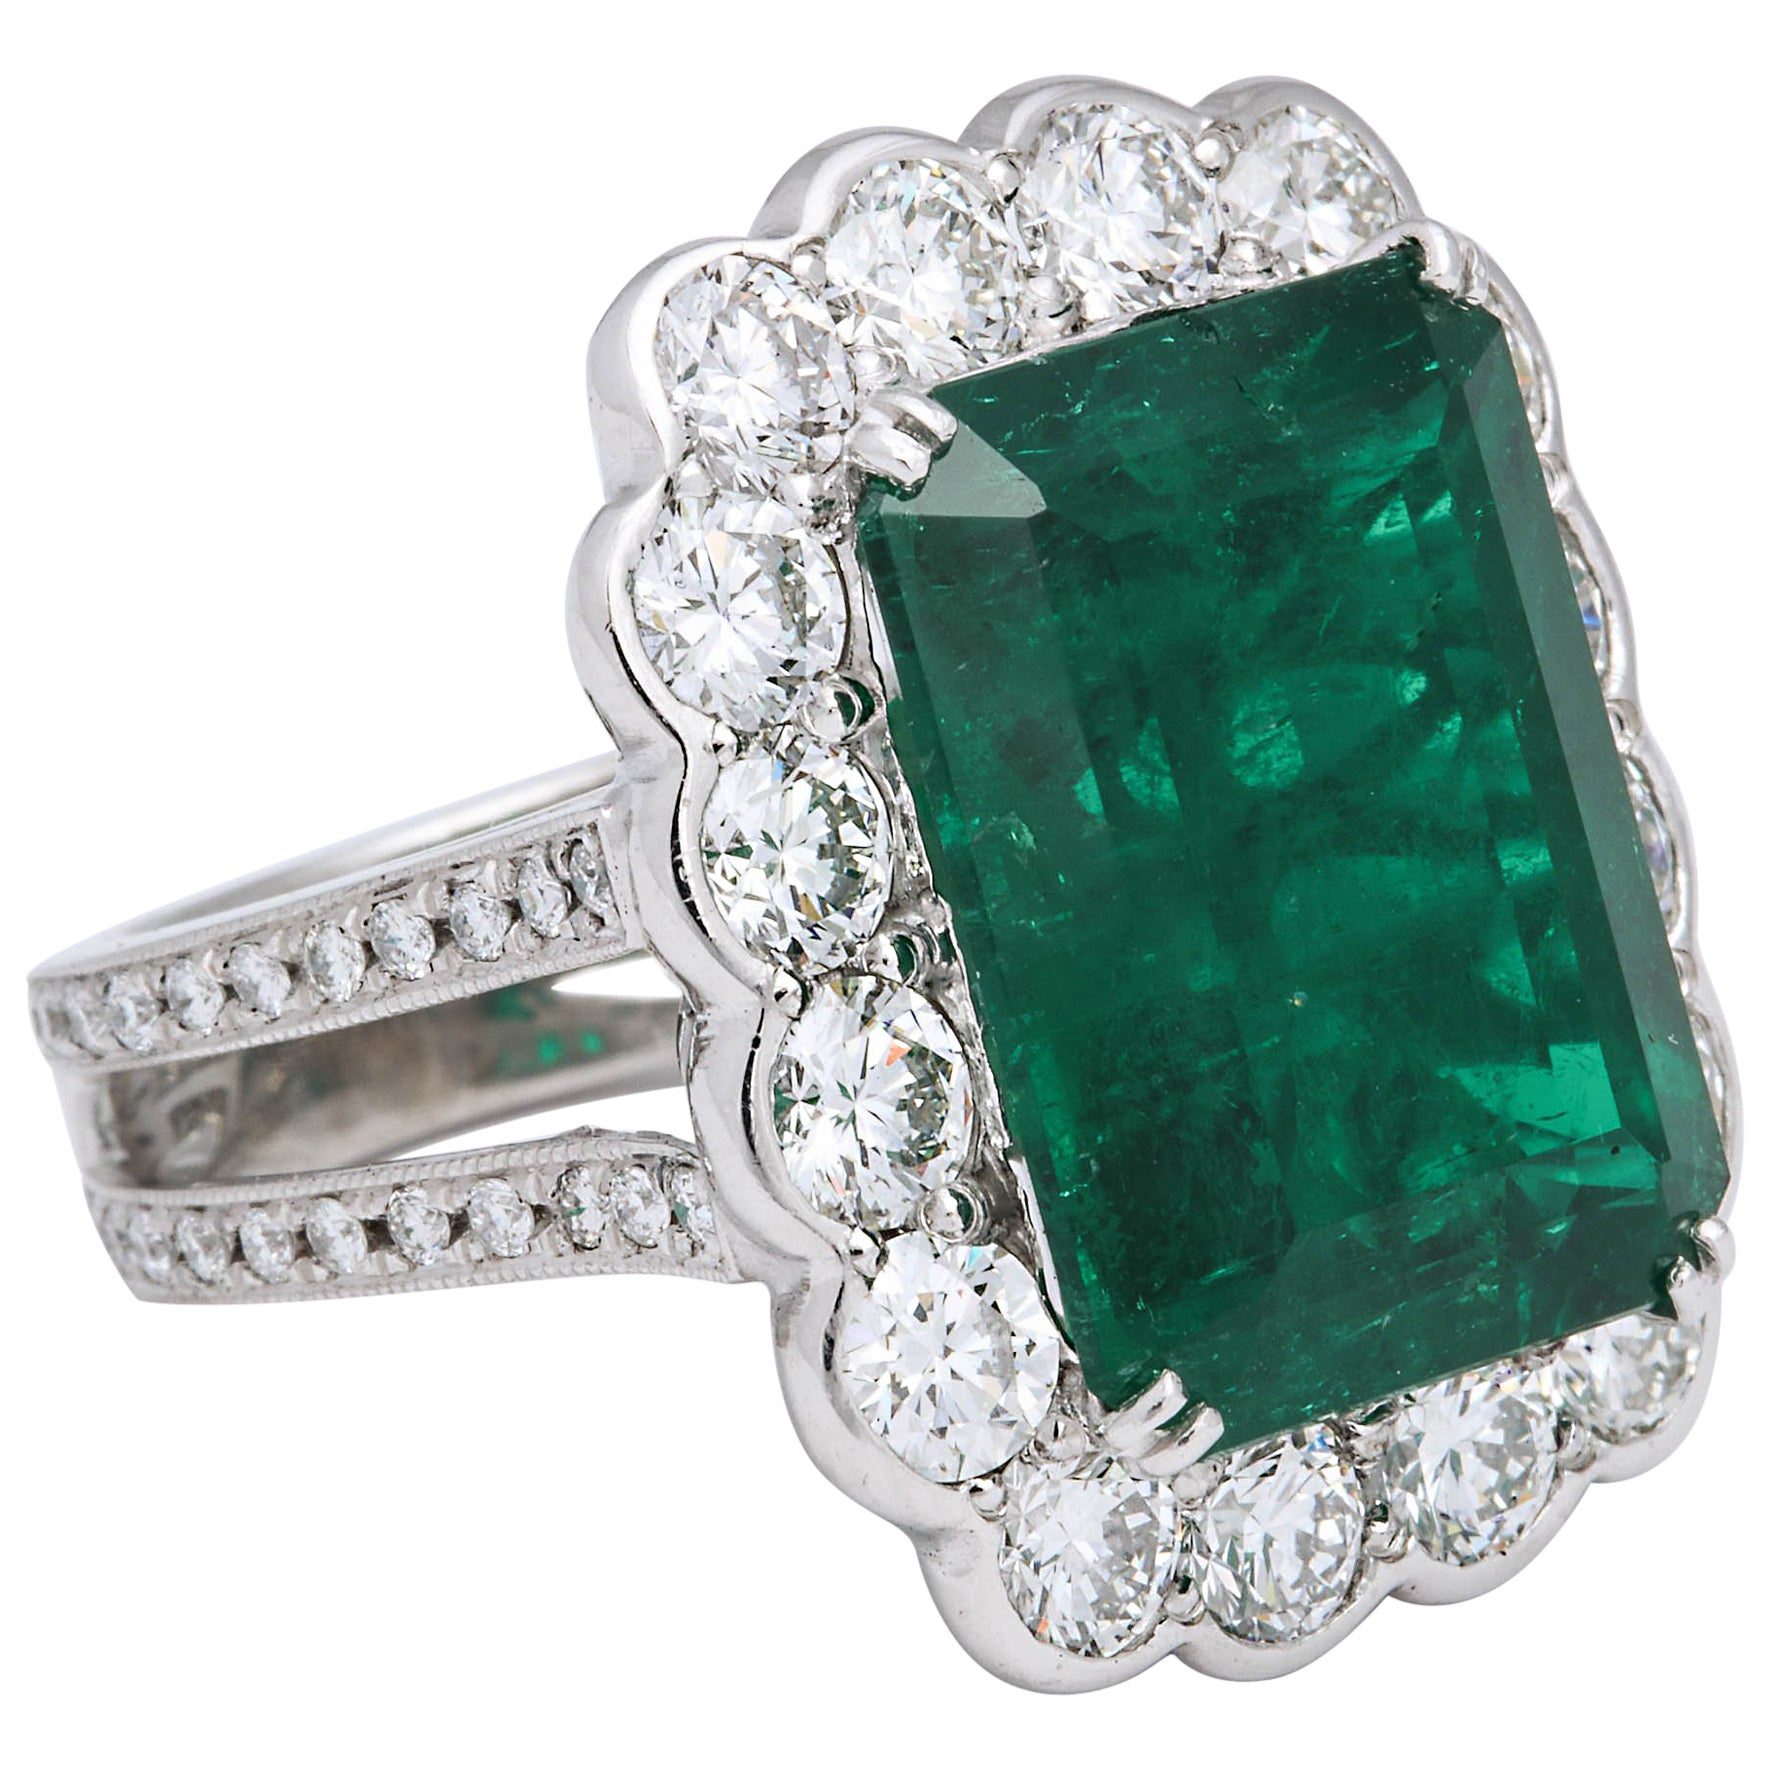 Important 13 Carat Colombian Emerald and Diamond Ring GIA Certified